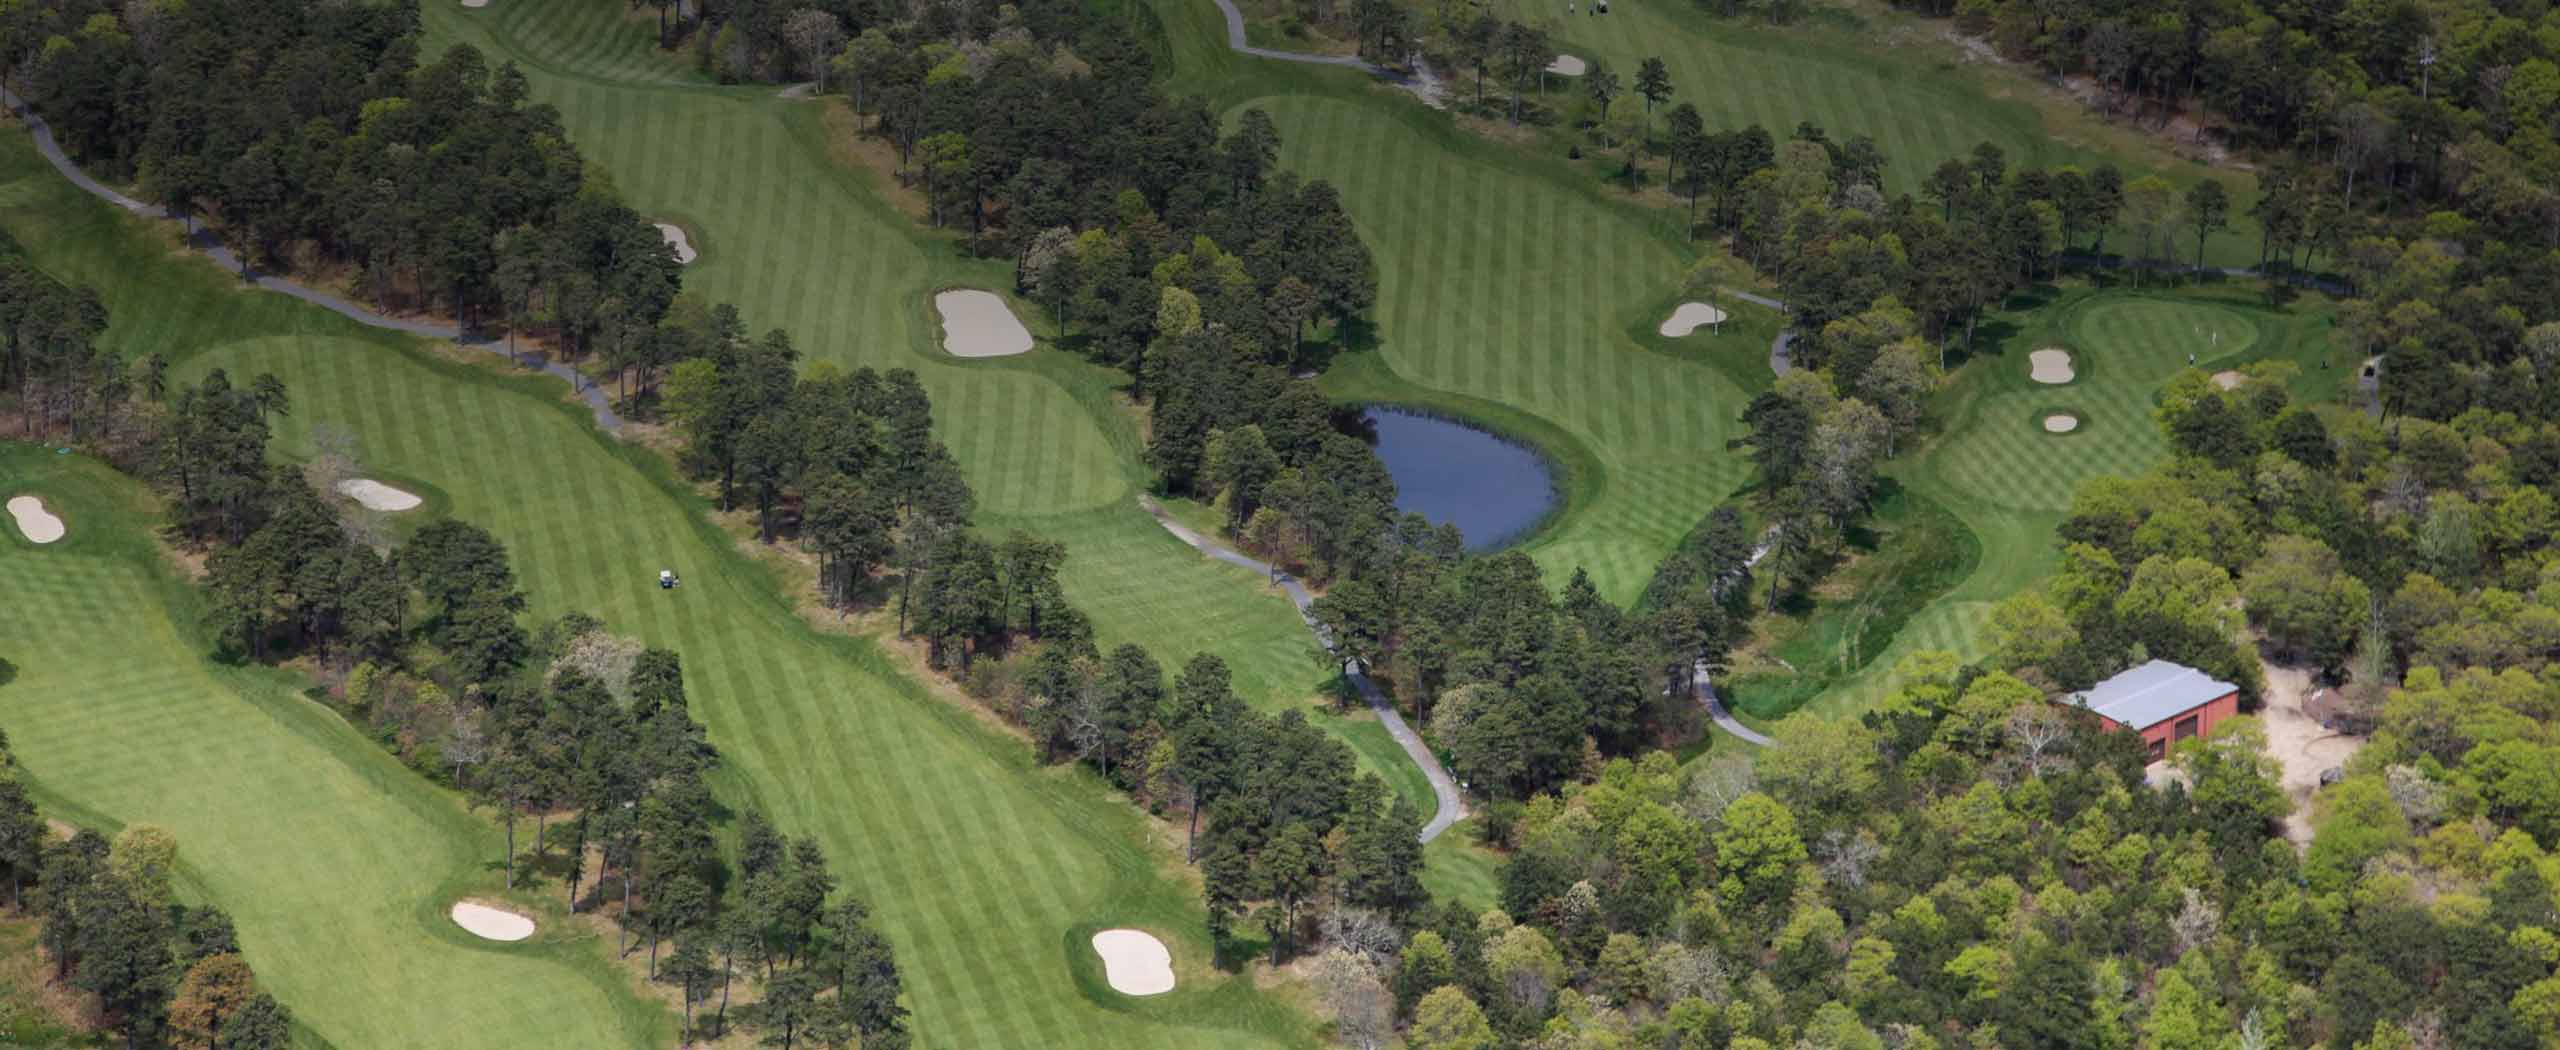 Overhead view of the Captains Golf Course on Cape Cod